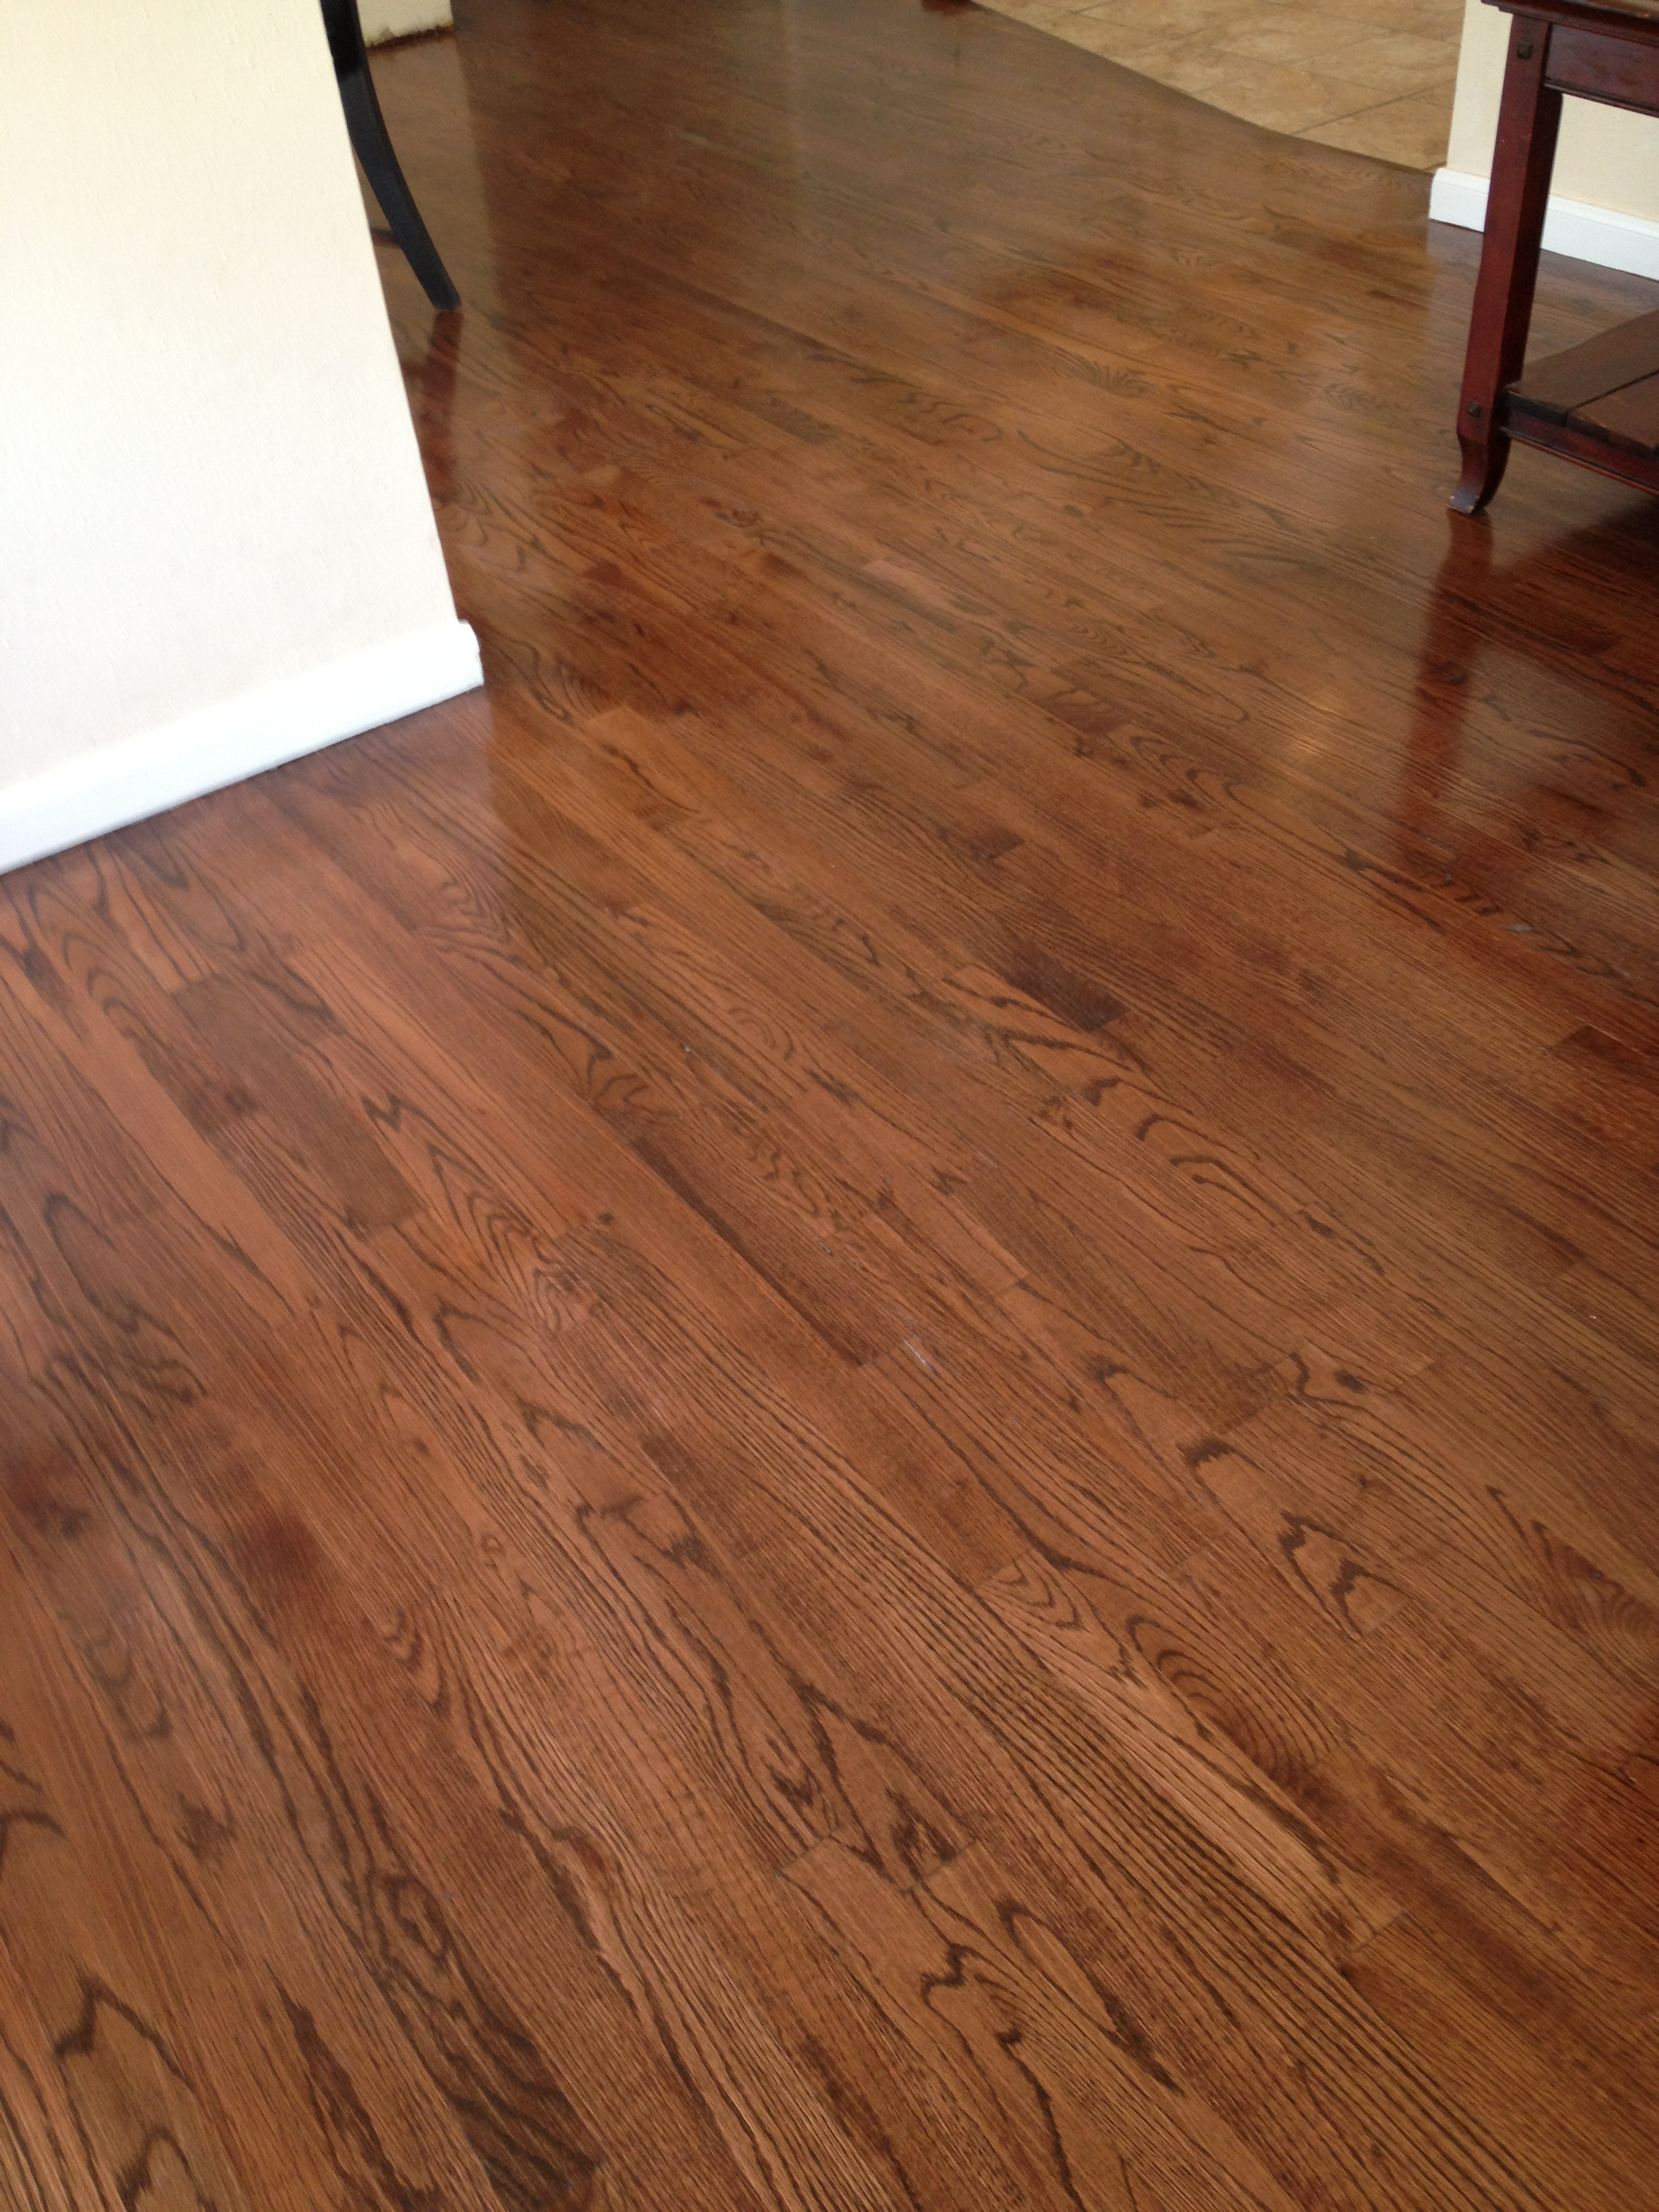 Laminate installation ultimate flooring company katy for Flooring companies